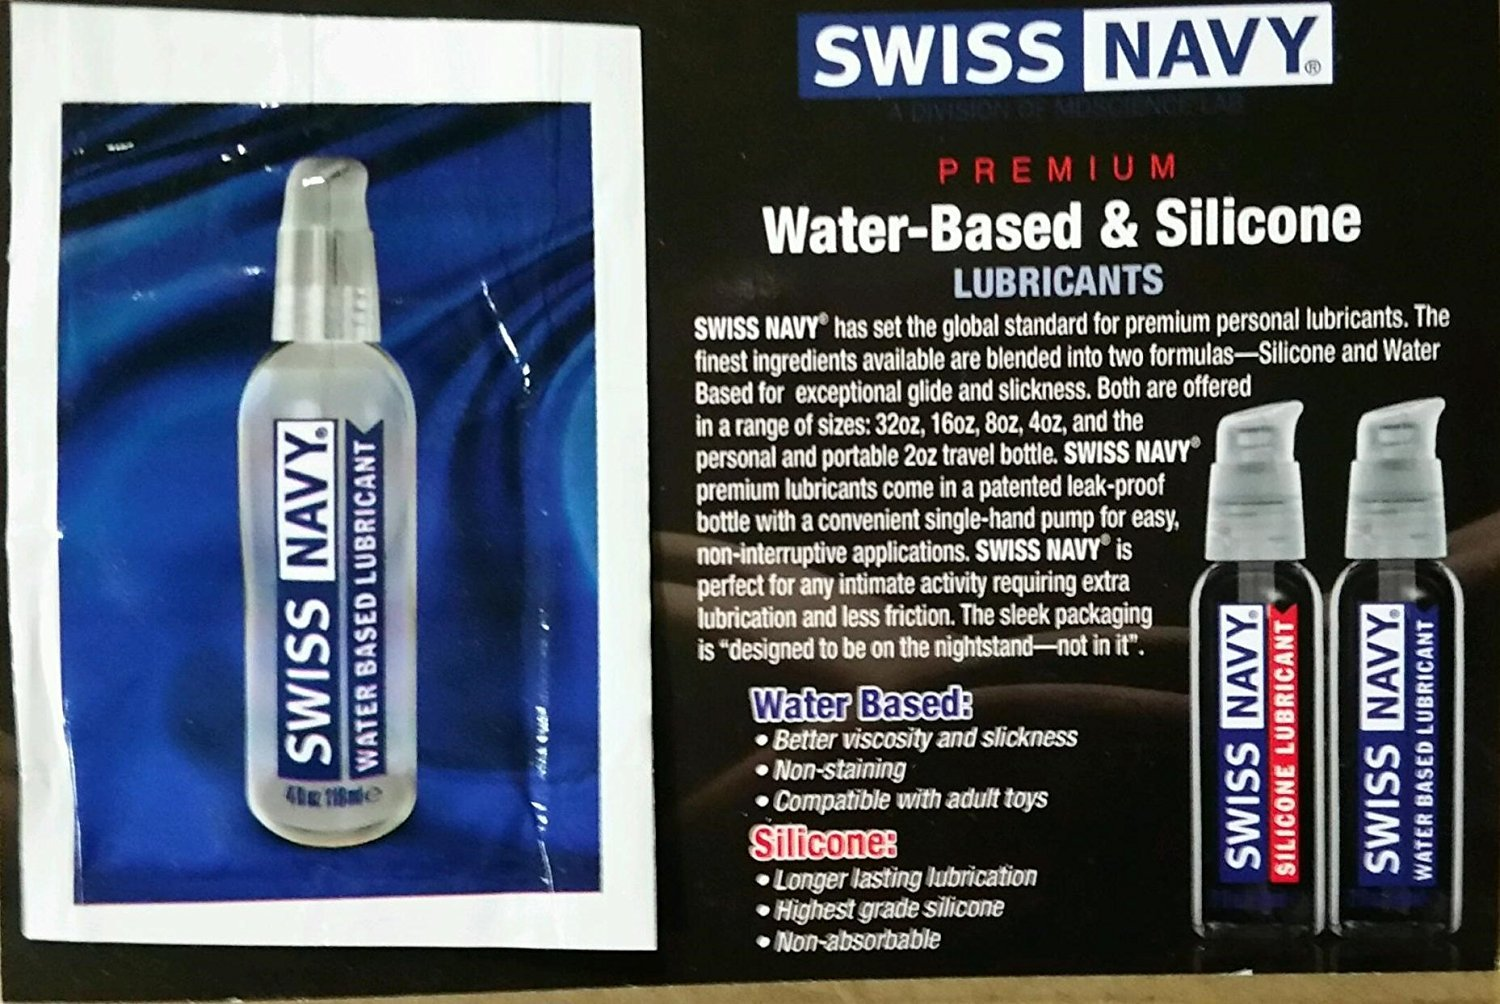 Bundle Package Of Dickalicious Penis Gel 2cc. (DP/144) AND Swiss Navy Water Based Lubricant 5ml Foil by Hott Products Unlimited